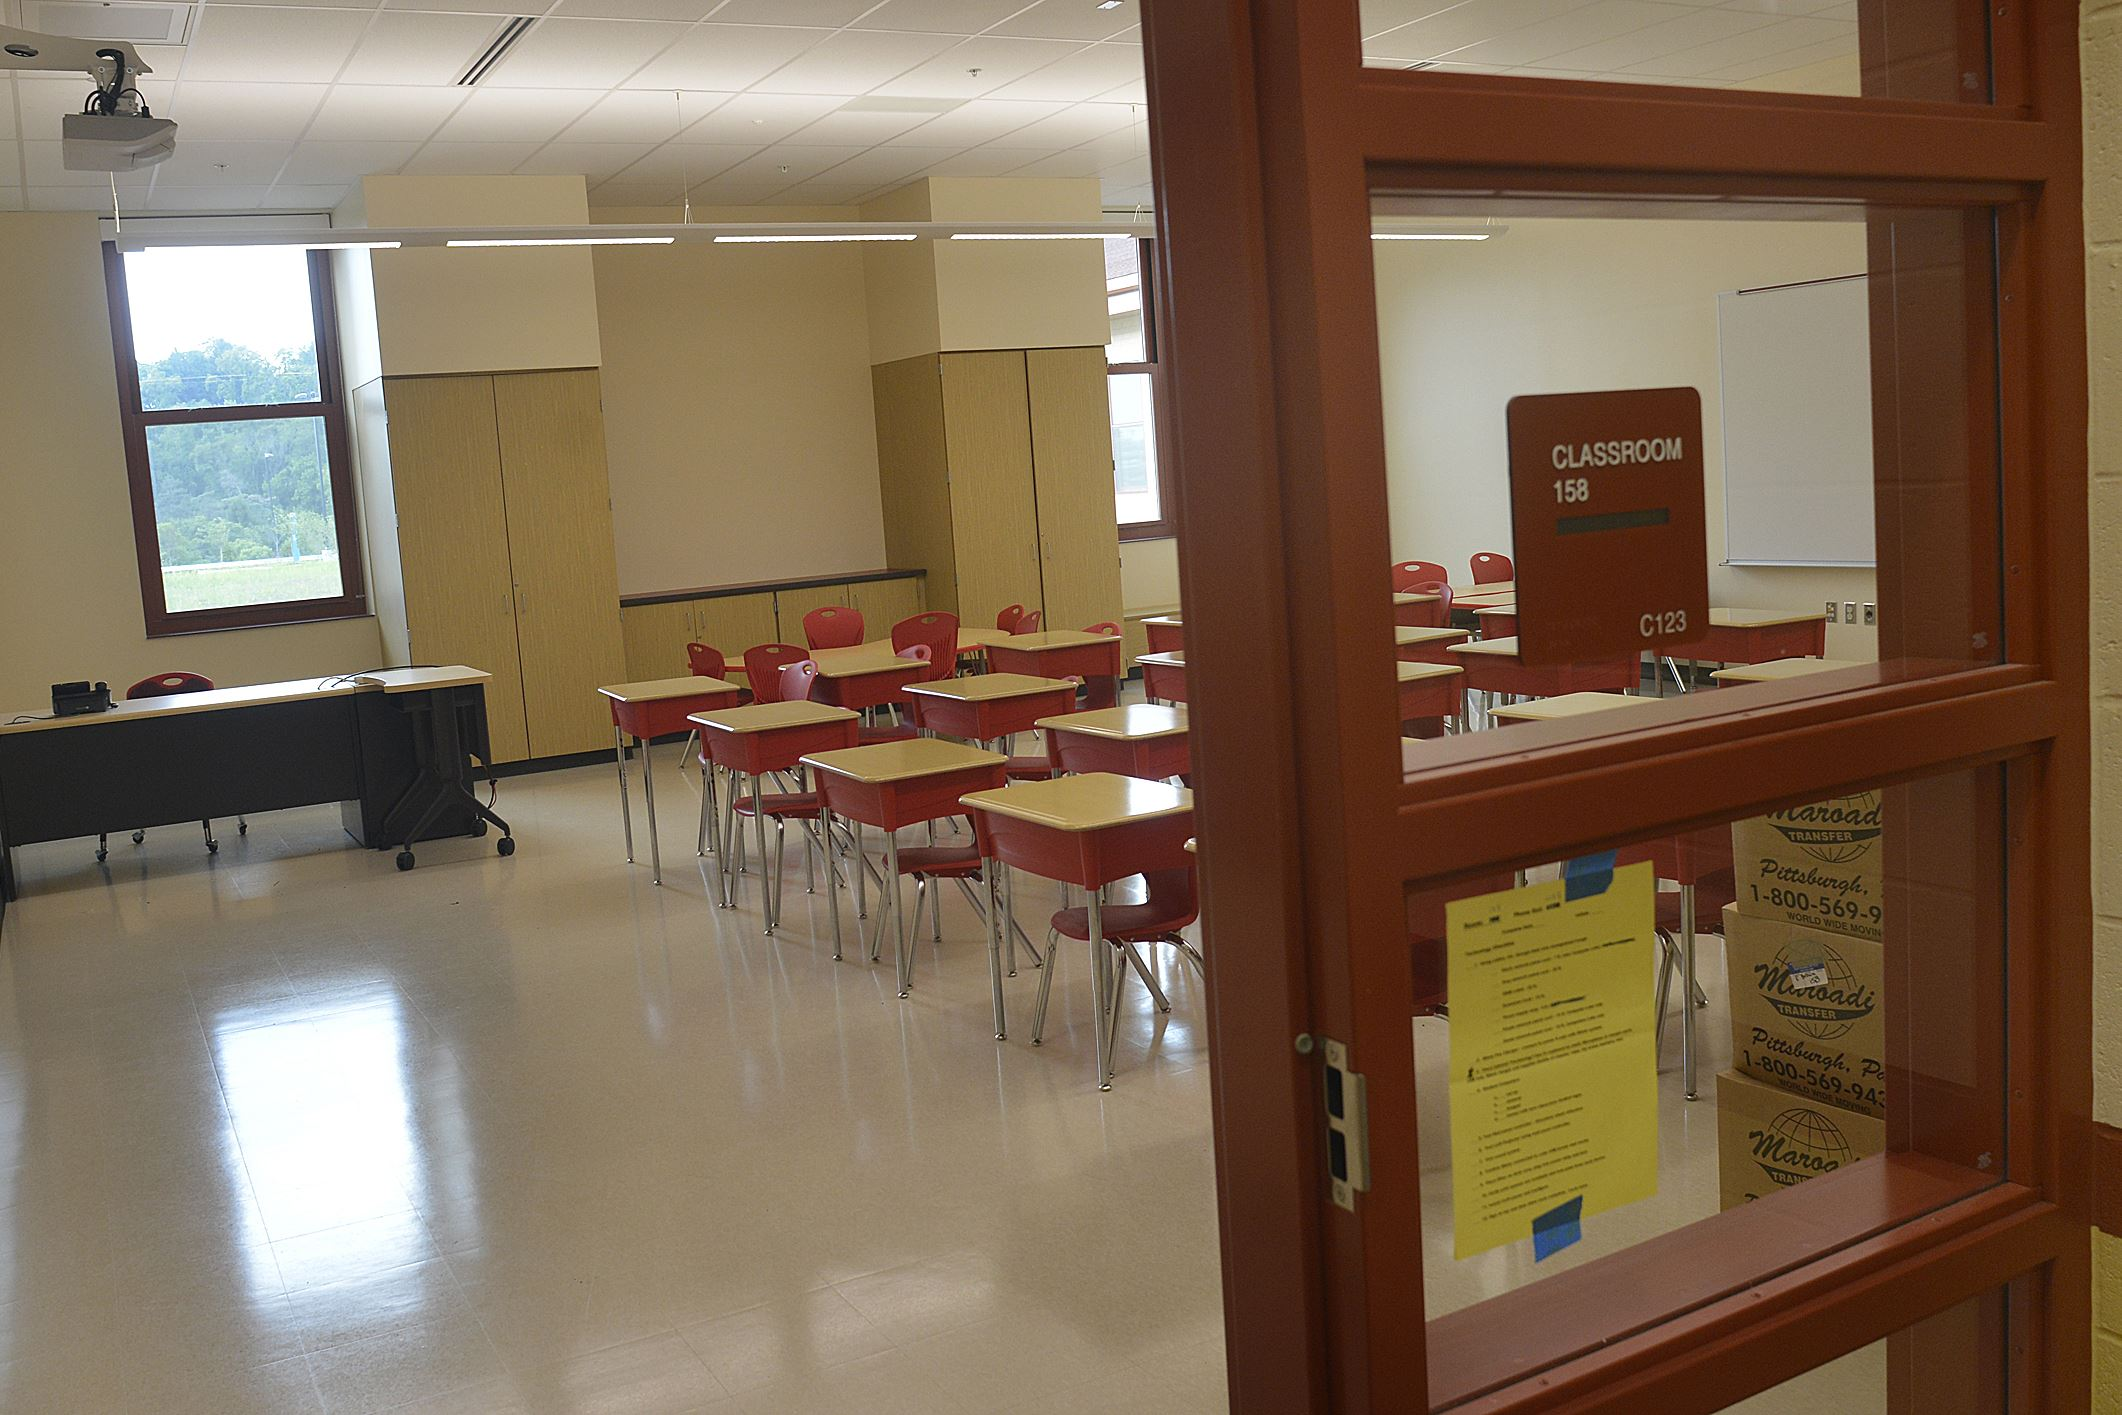 New Pennsylvania Law Expands School Clearance Requirements